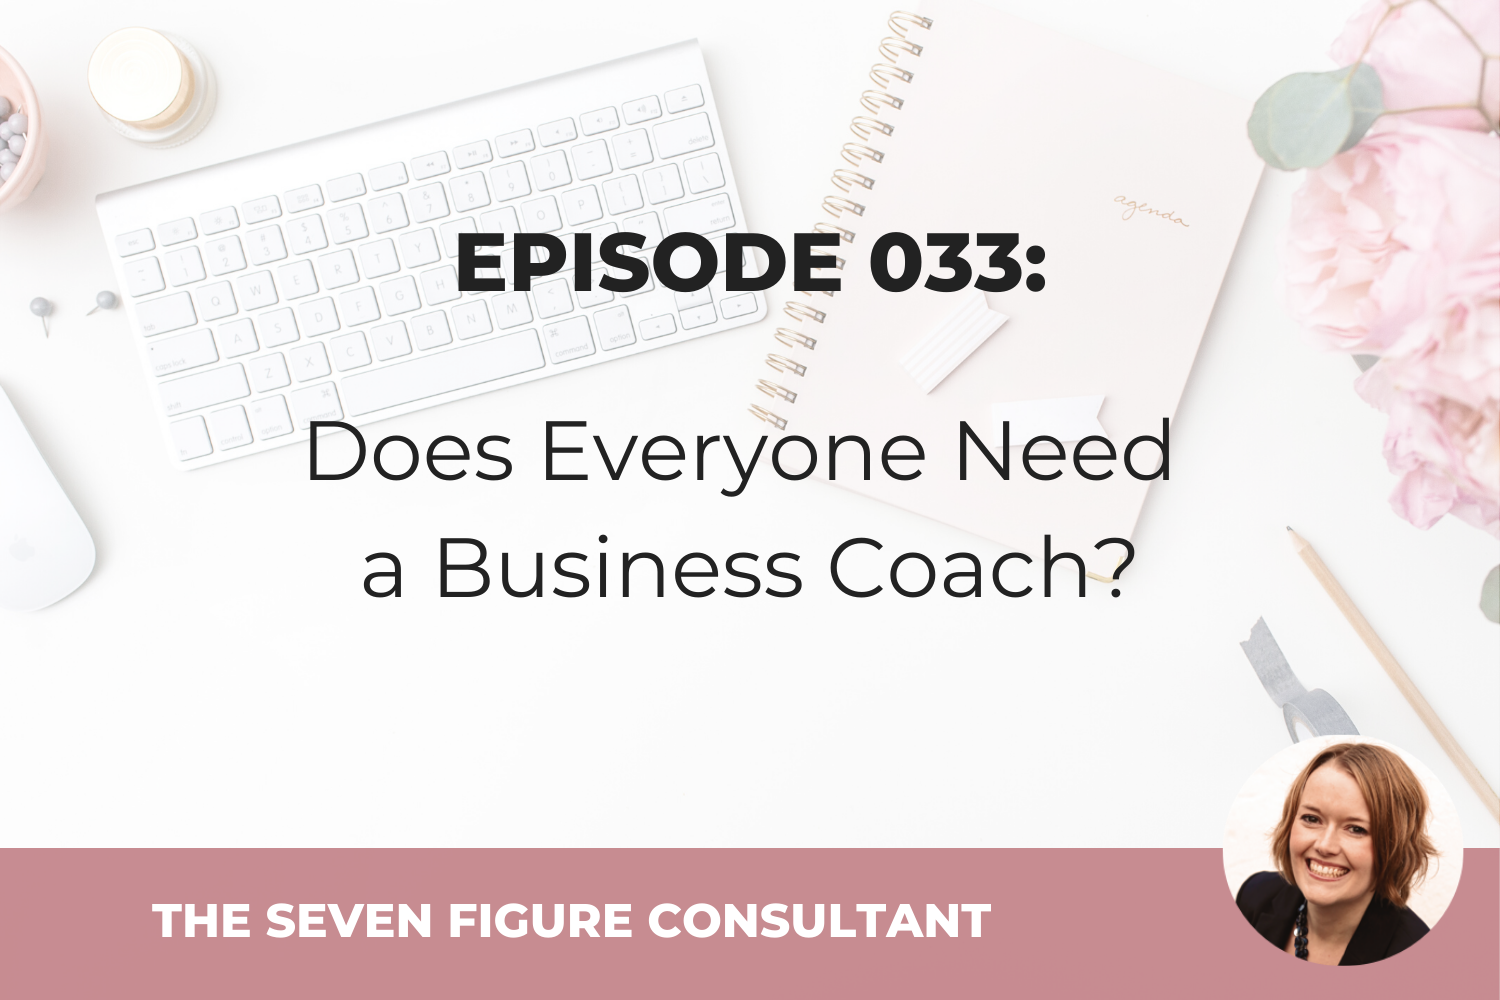 Episode 033: Does Everyone Need a Business Coach?